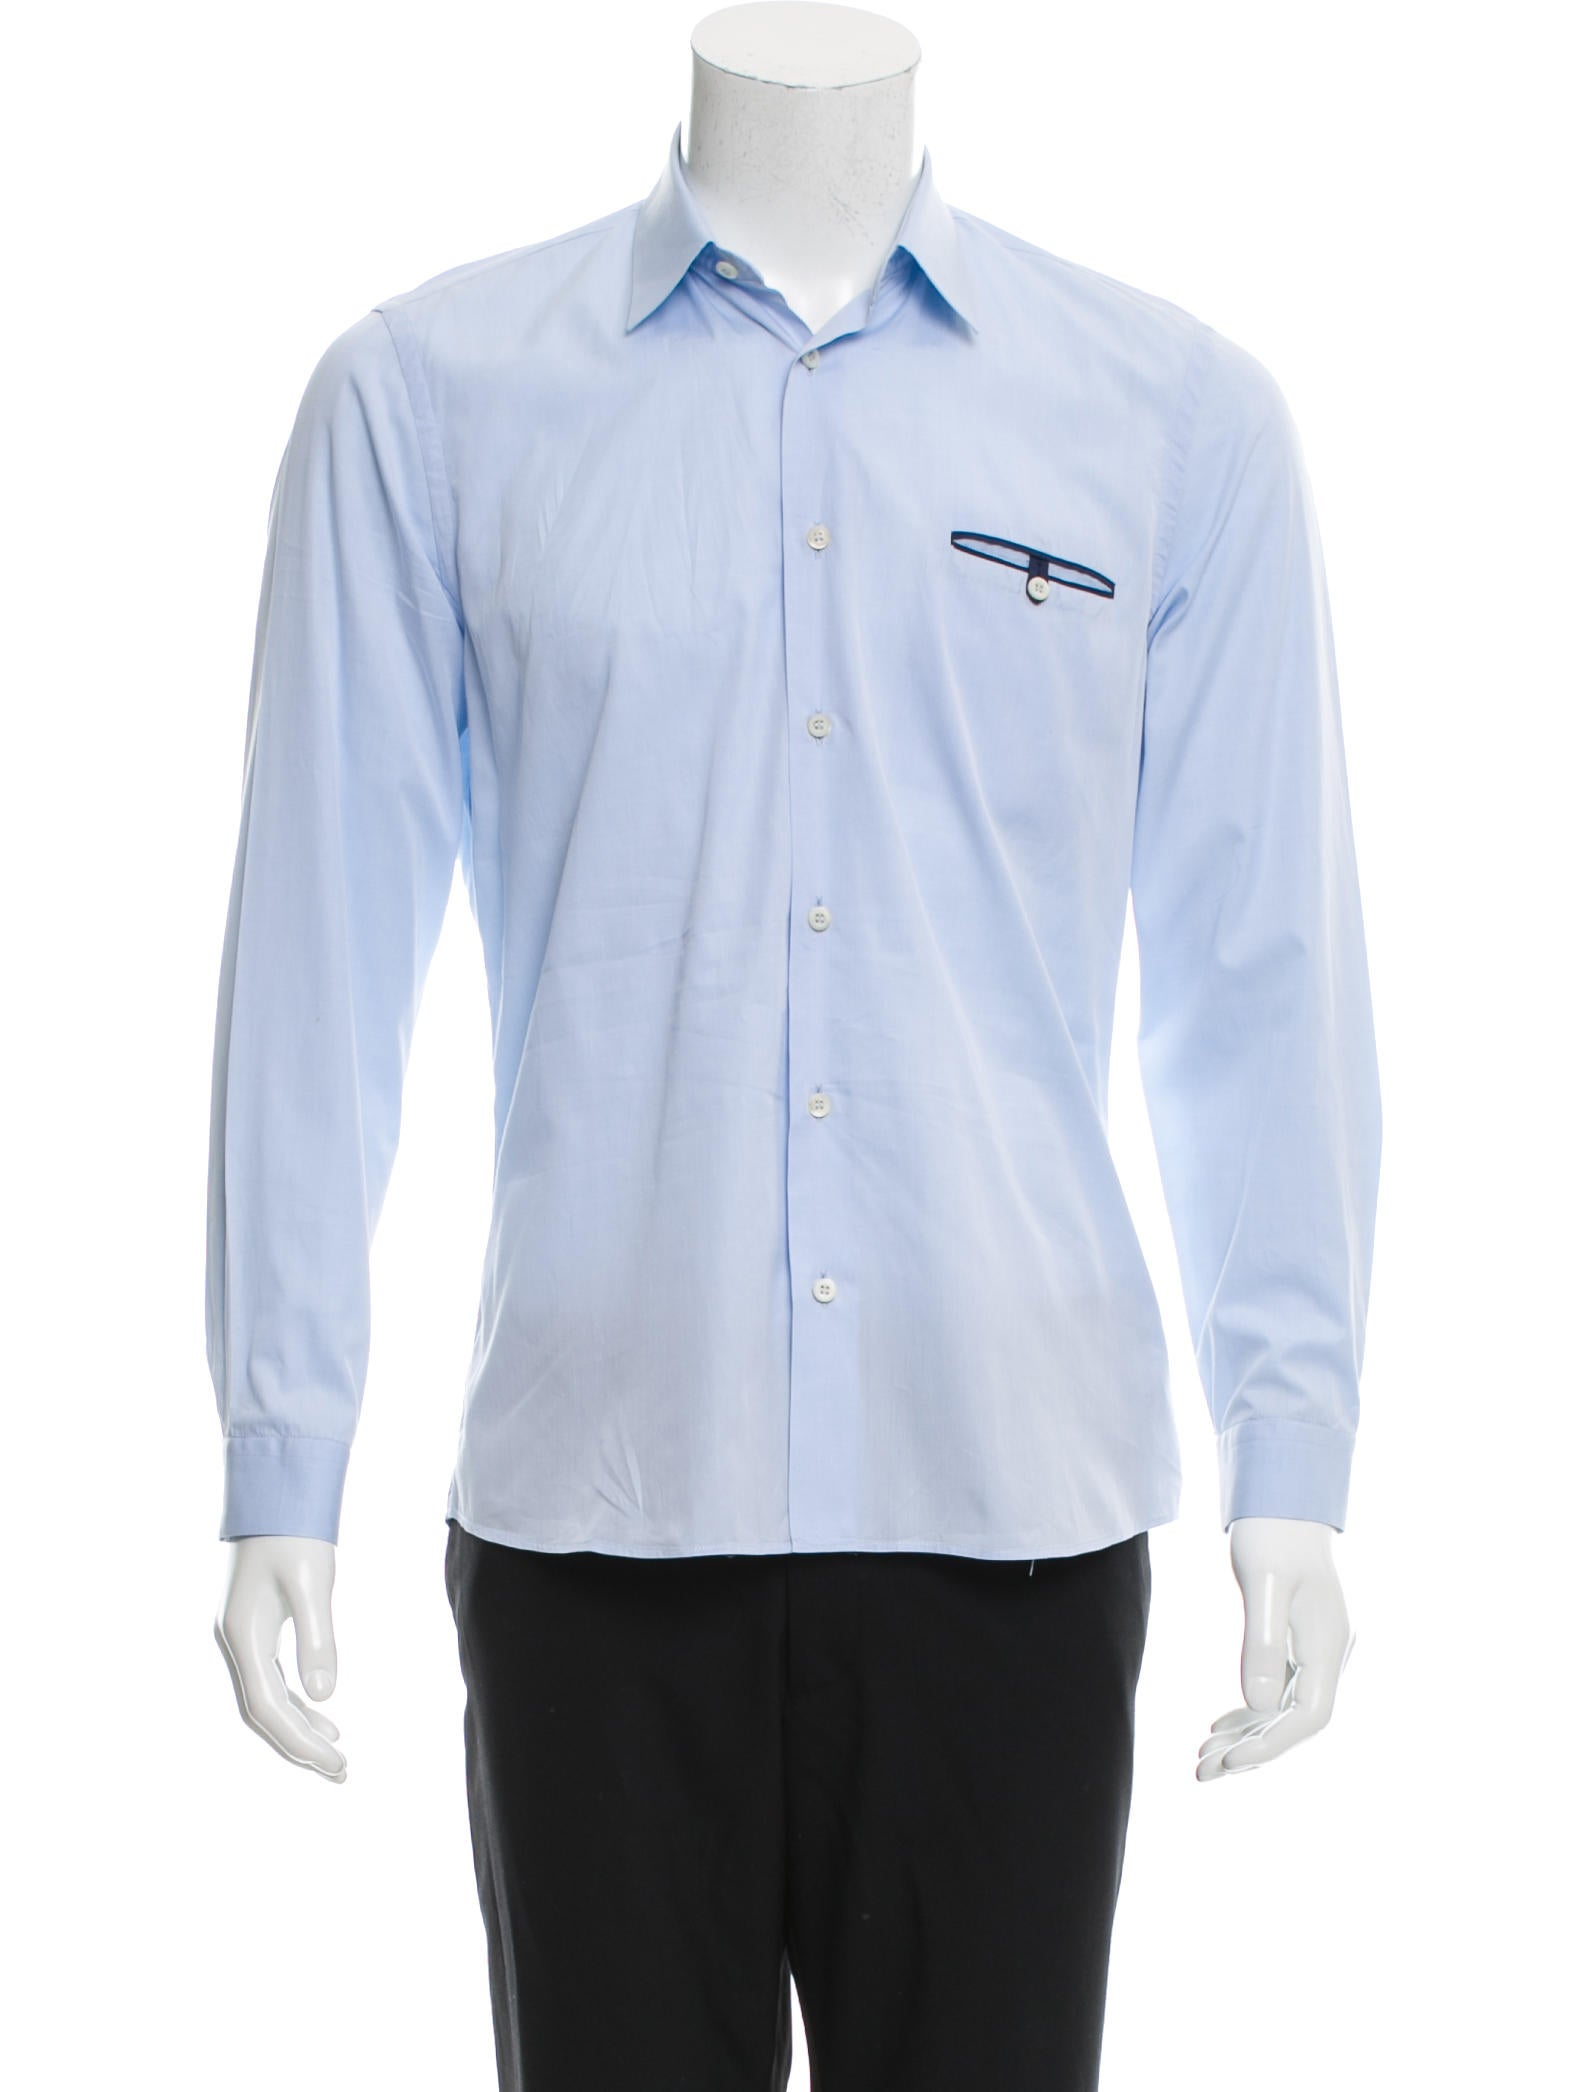 Prada long sleeve button up shirt clothing pra143084 for Cool long sleeve button up shirts